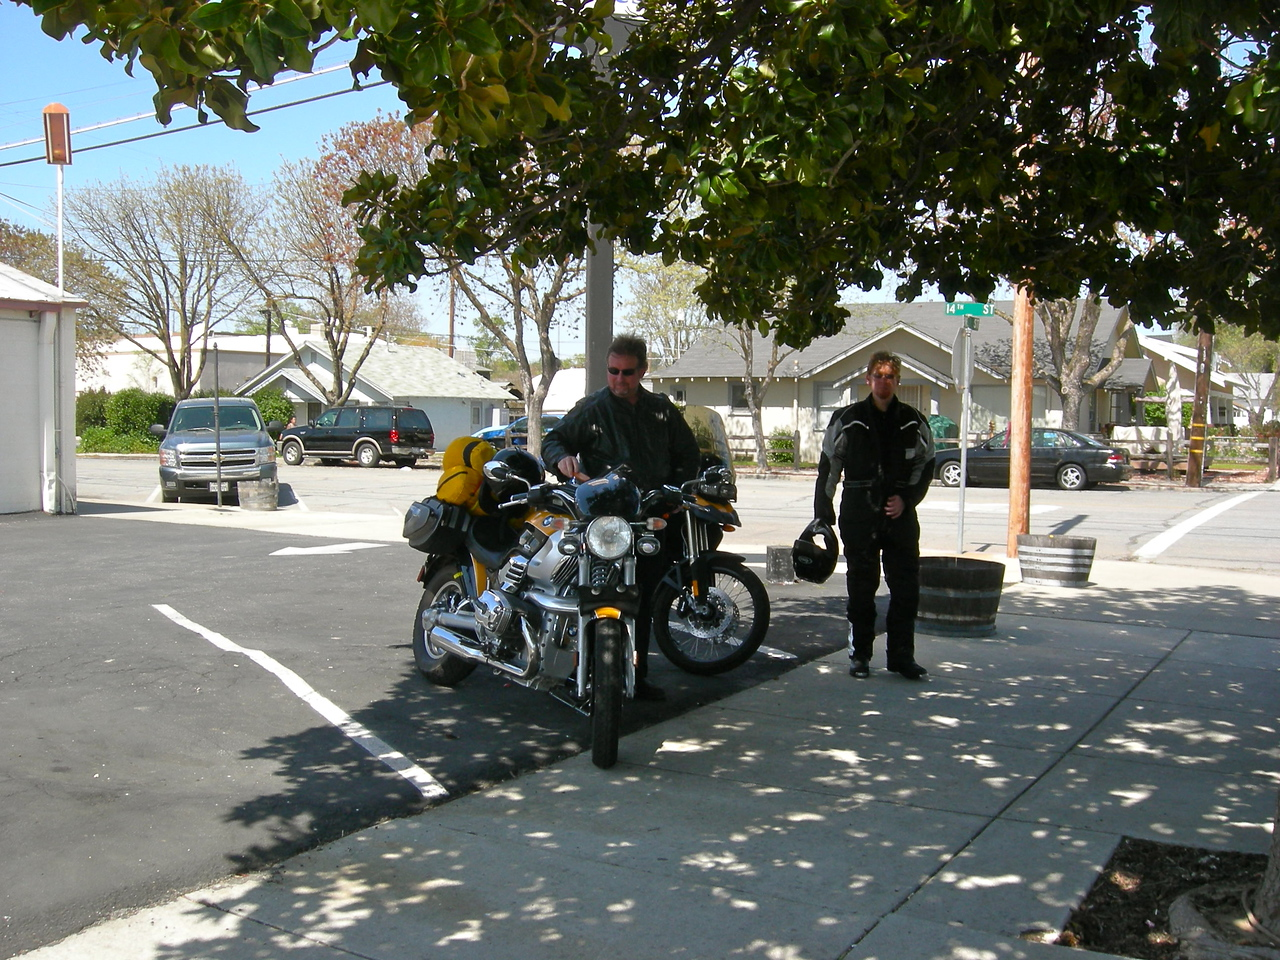 Scot Orr & Cliff Dunn stop for lunch in Paso Robles.